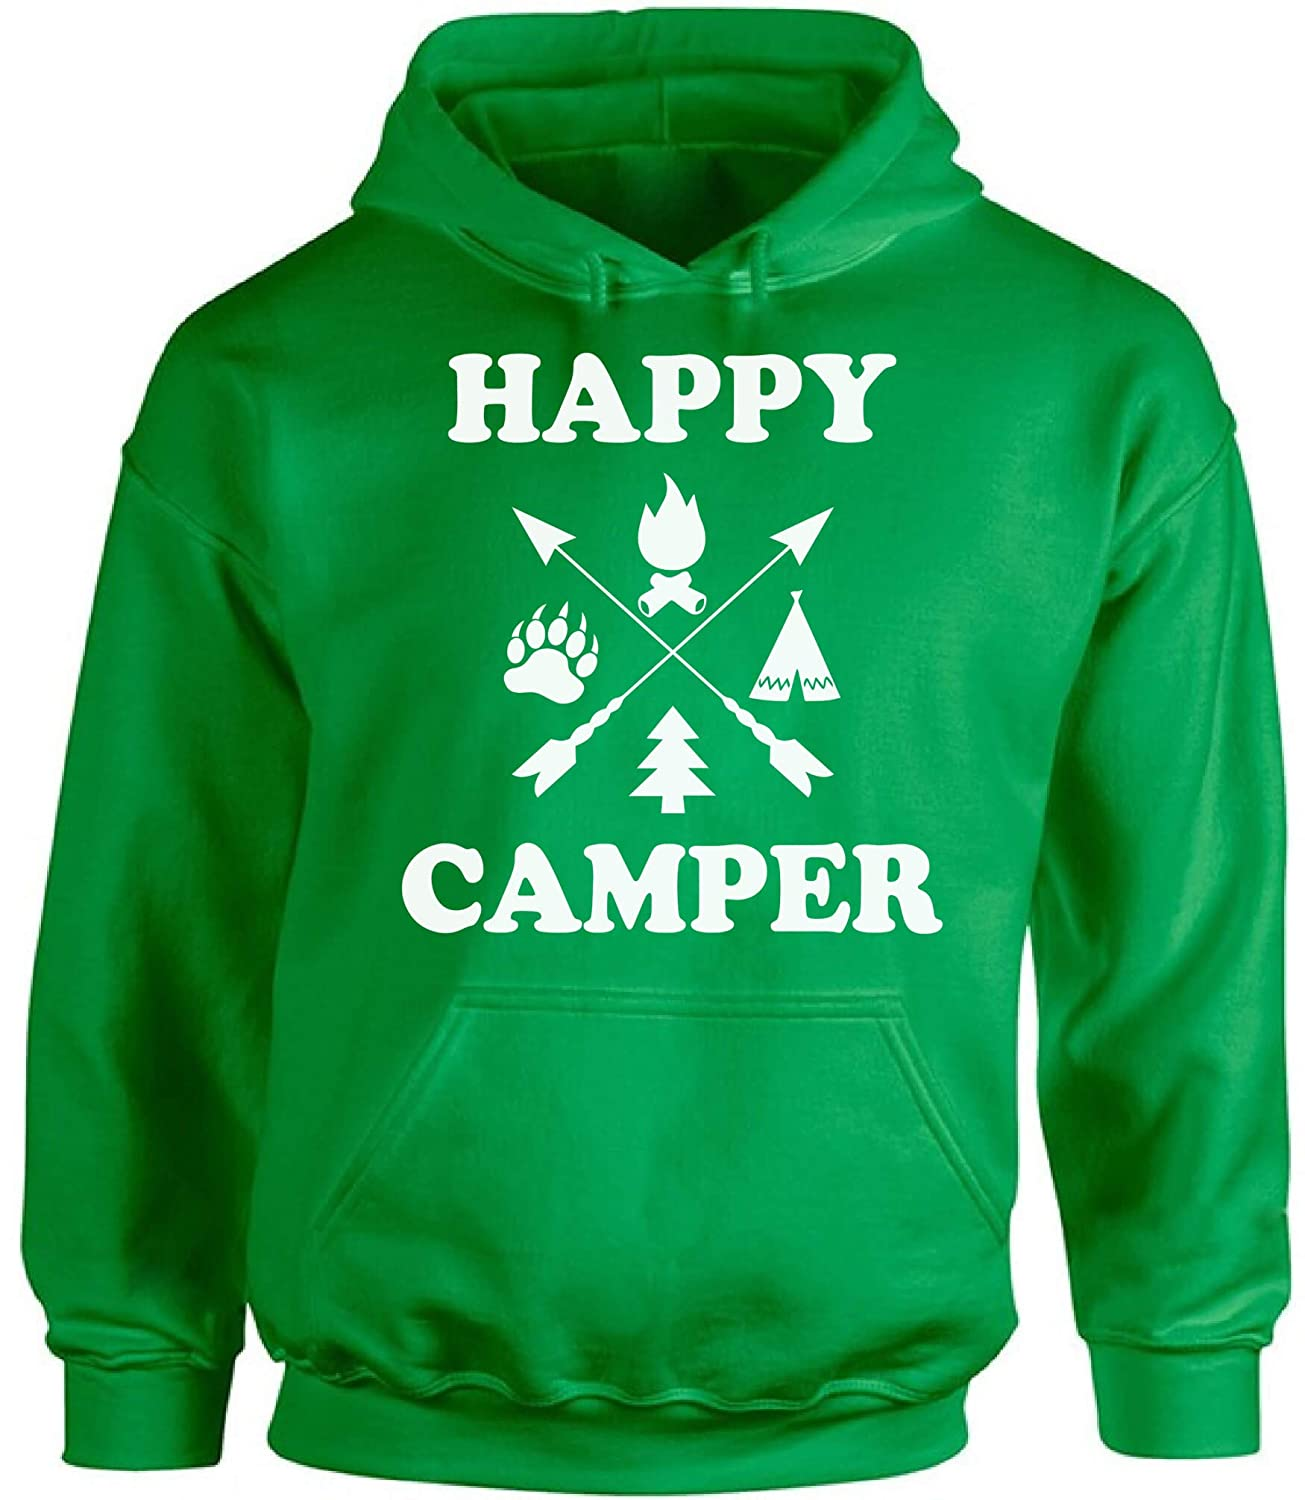 Awkward Styles Happy Camper Unisex Sweatshirt Camper Hoodie for Dad Happy Camper Hoodie